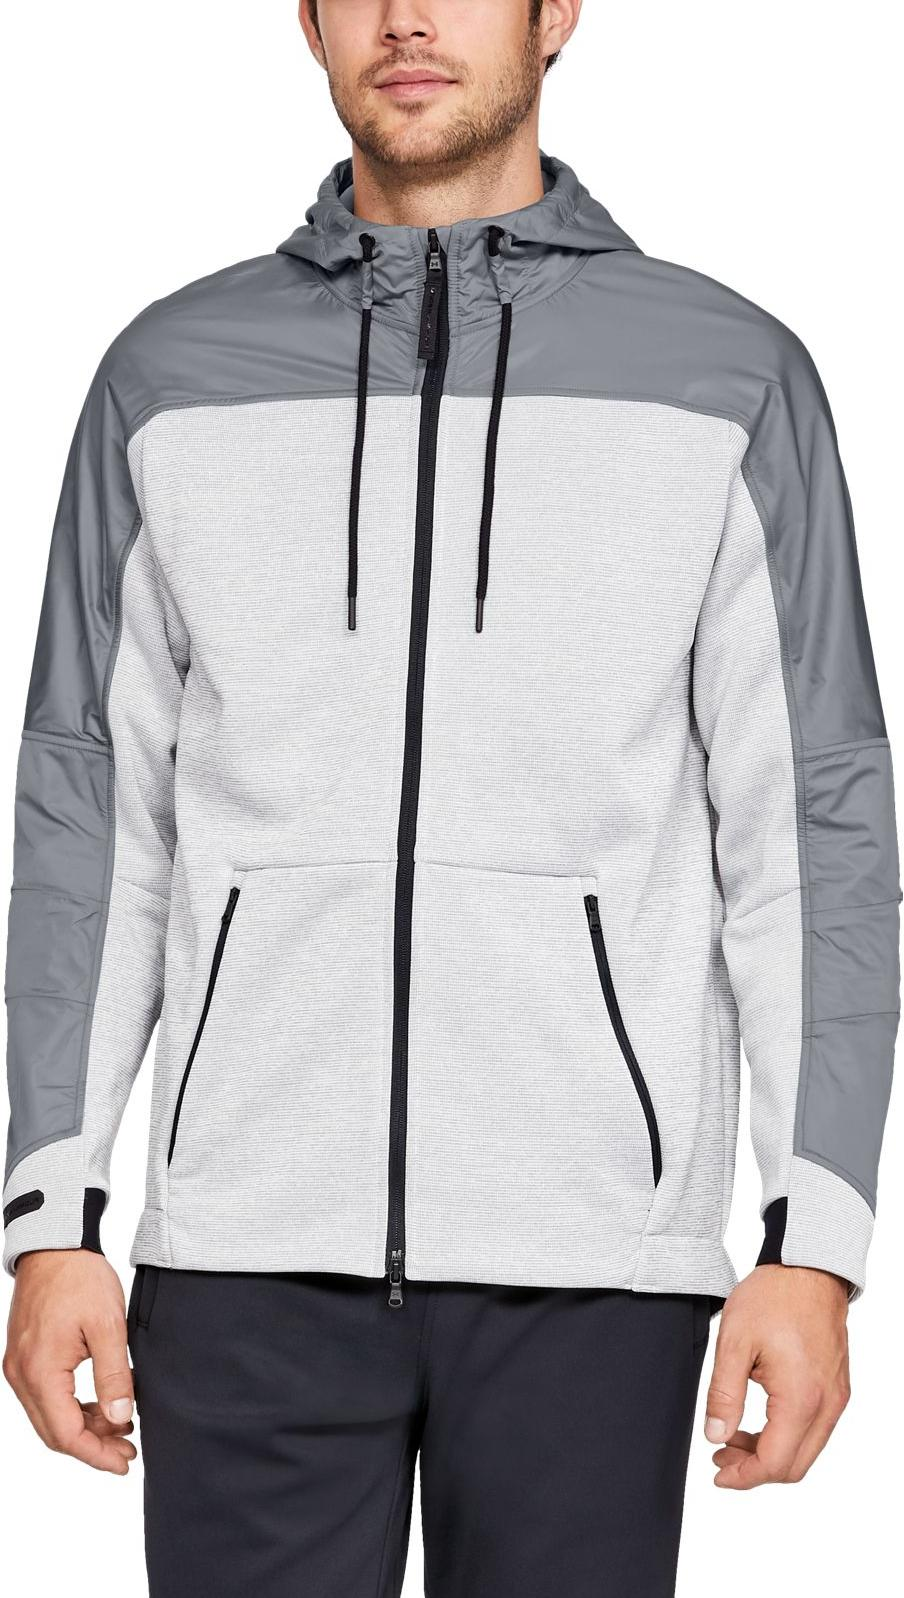 Jacheta cu gluga Under Armour UNSTOPPABLE COLDGEAR SWACKET